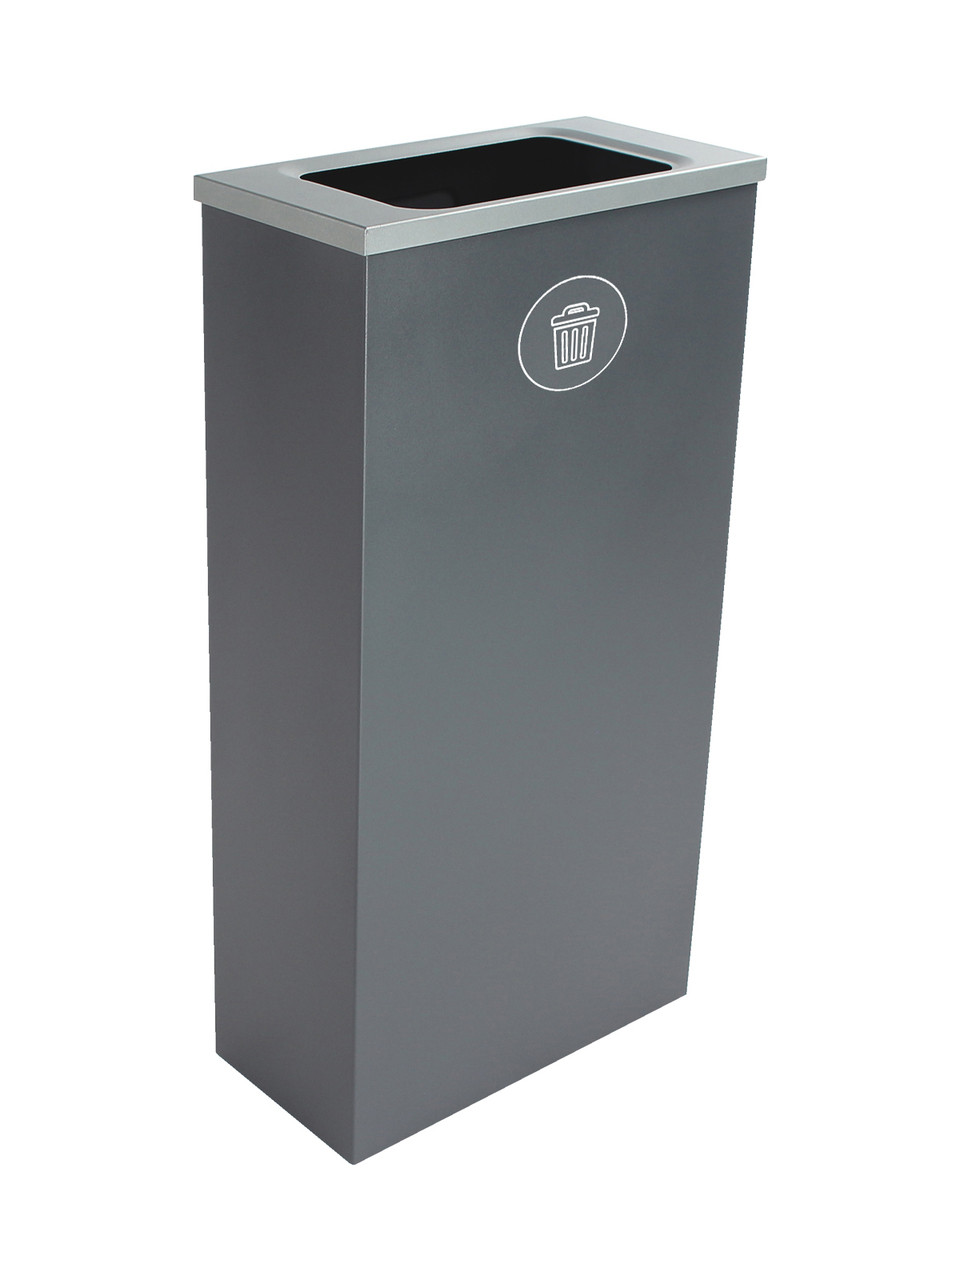 10 Gallon Steel Spectrum Slim Trash Can Gray 8107068-4